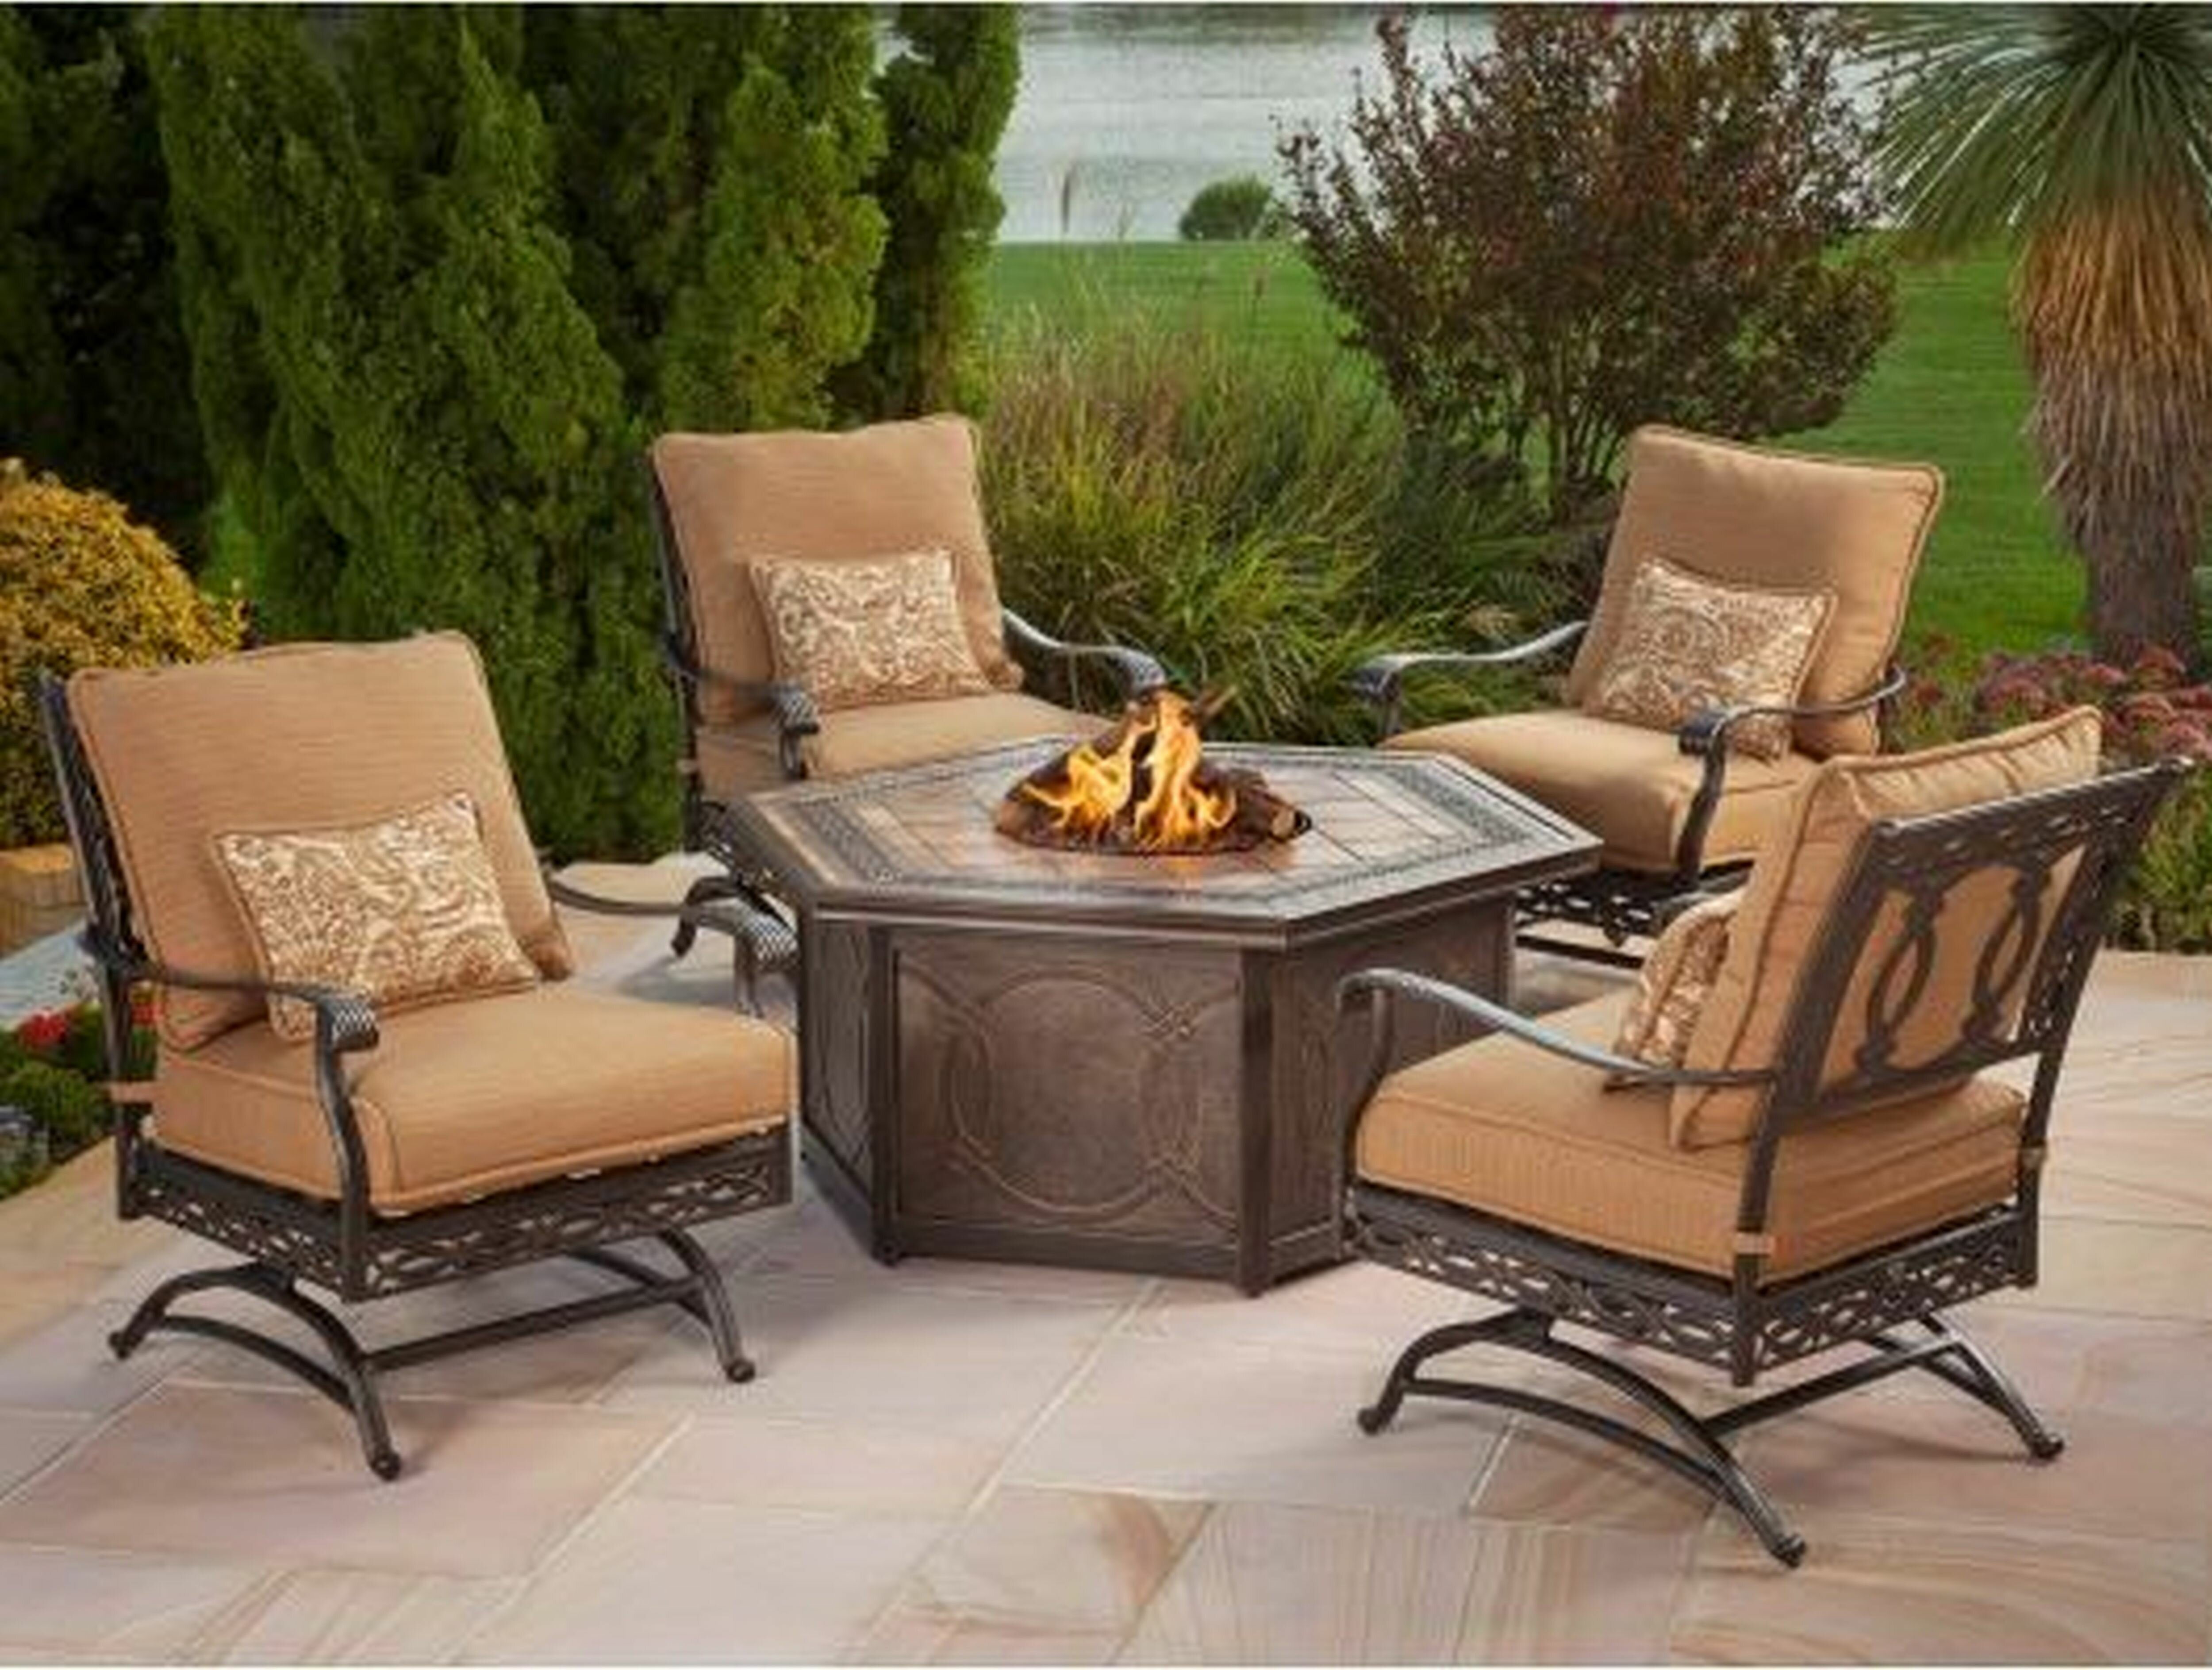 Lowes Chaise Lounge | Lowes Lounge Chairs | Bistro Patio Sets Lowes